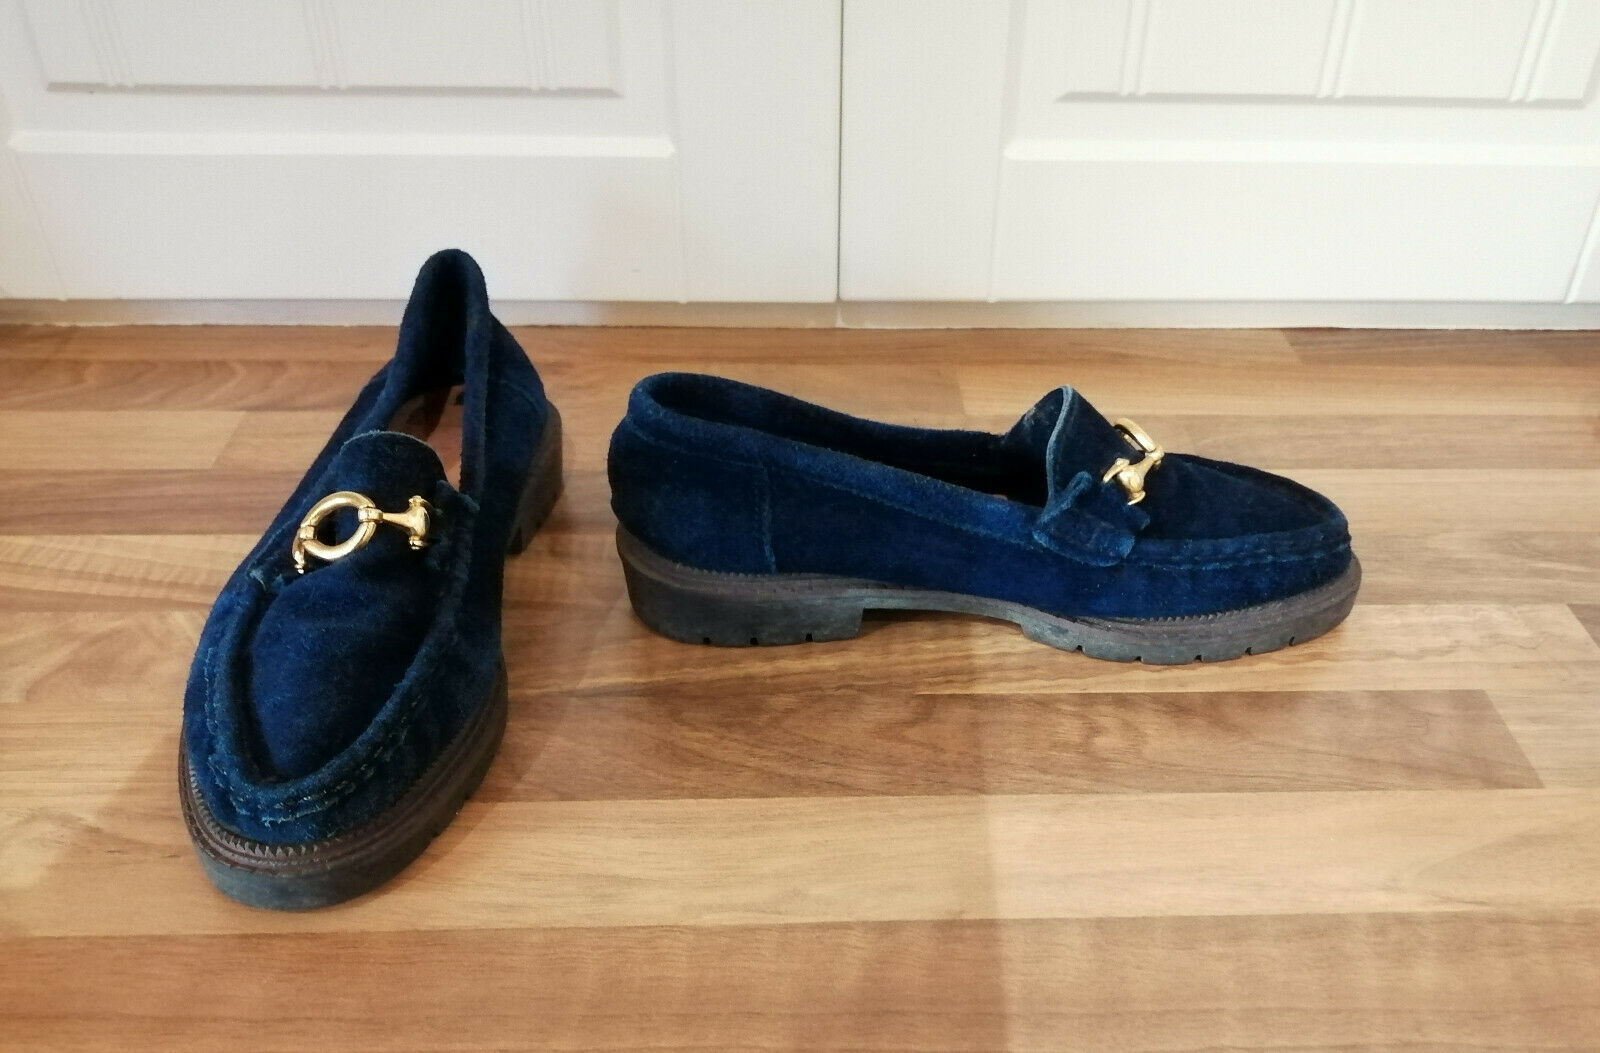 ladies size 3 (36) blue loafers with gold bar detail & rubber soles